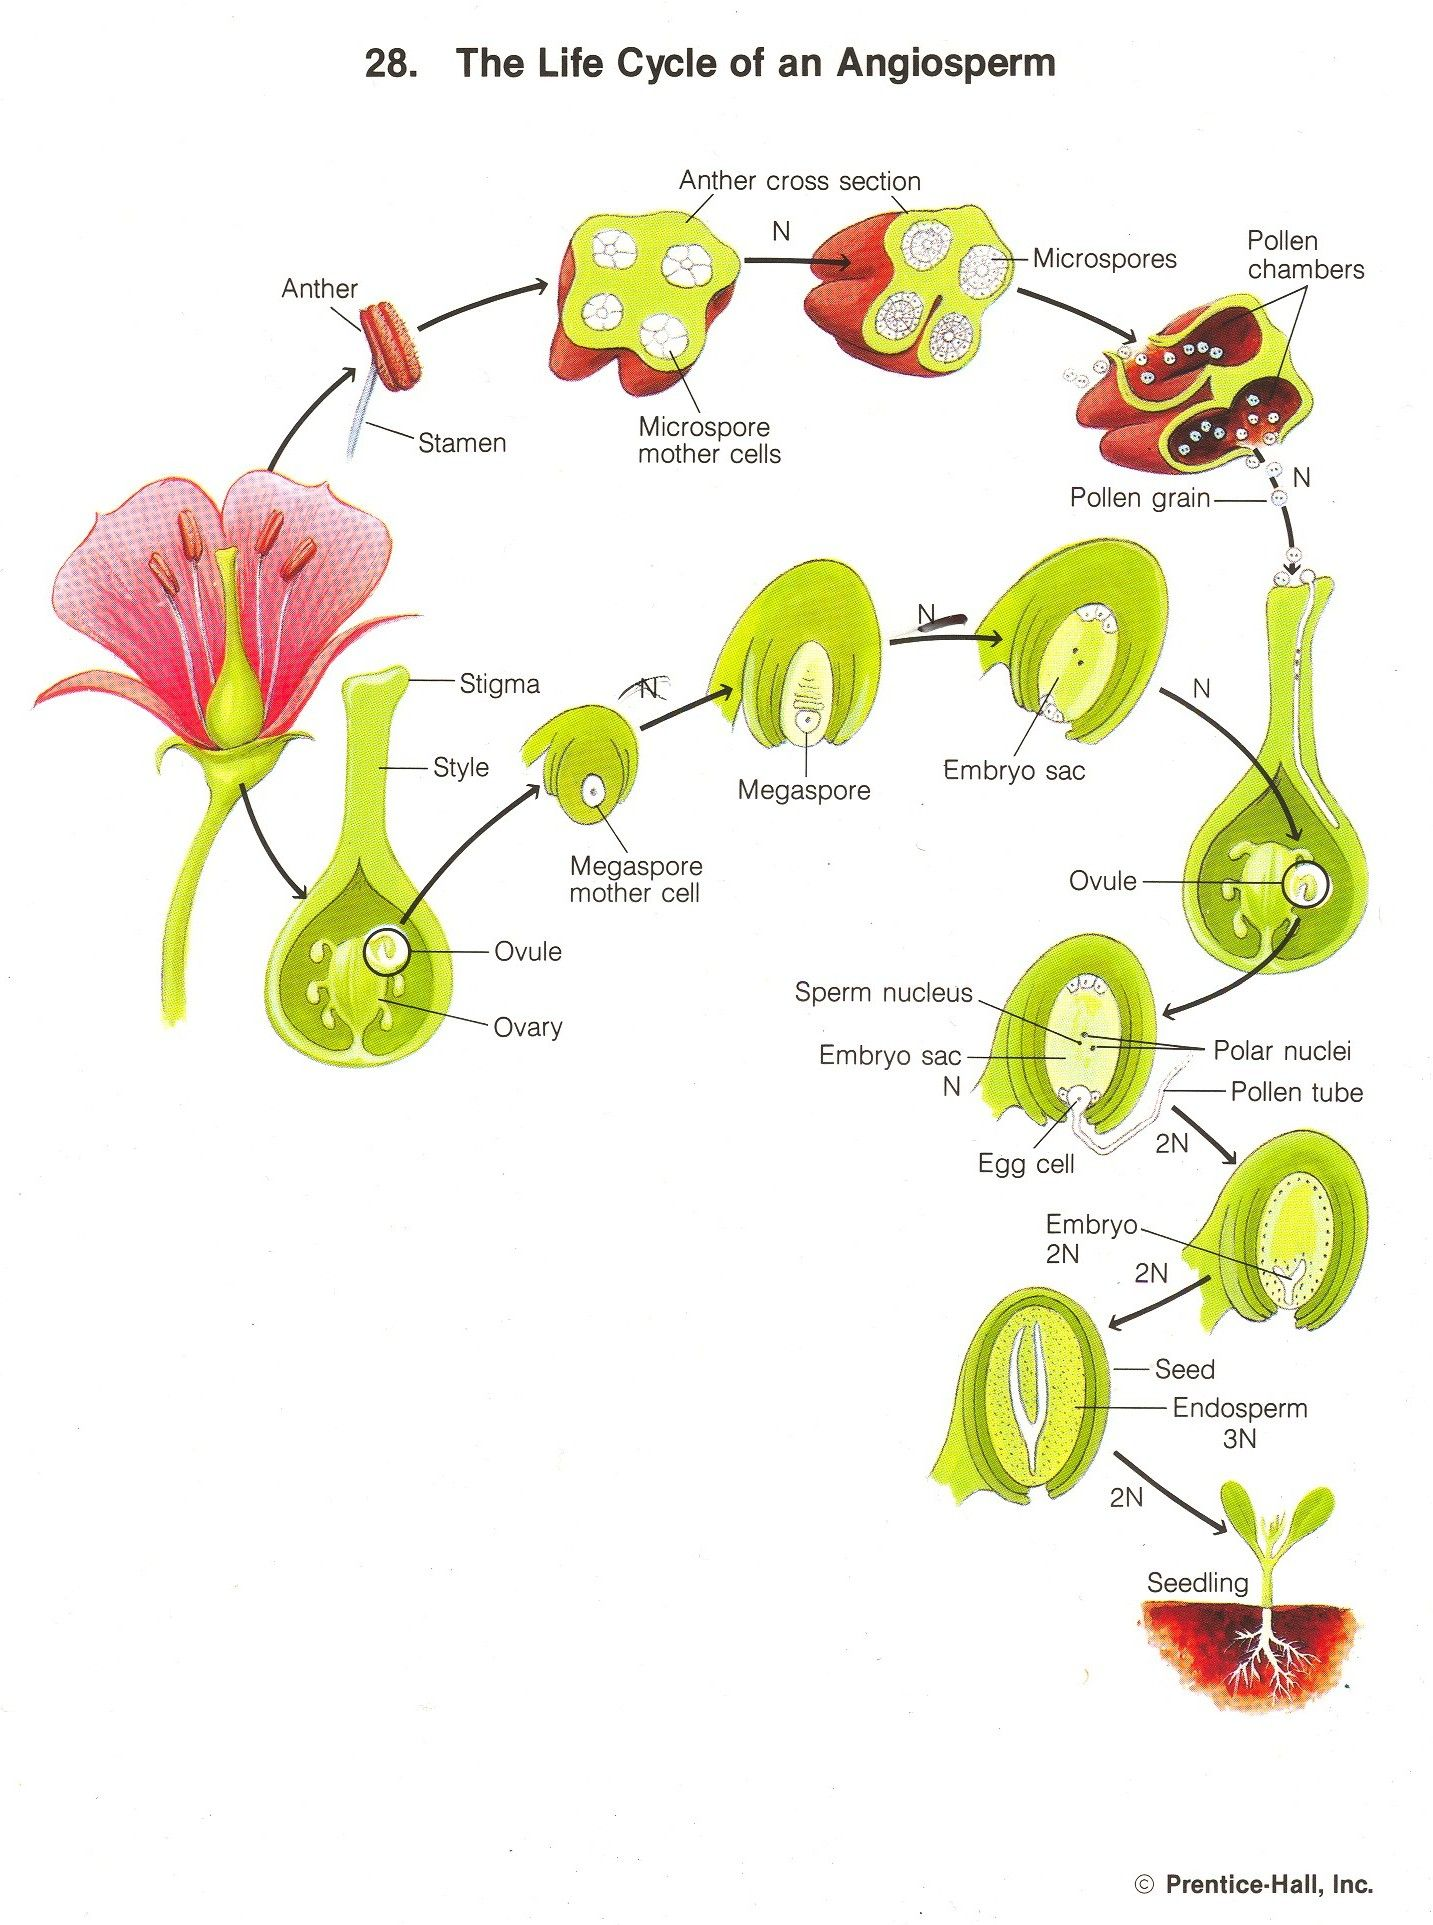 Angiosperm Life Cycle | Teaching - Botany | Pinterest ...